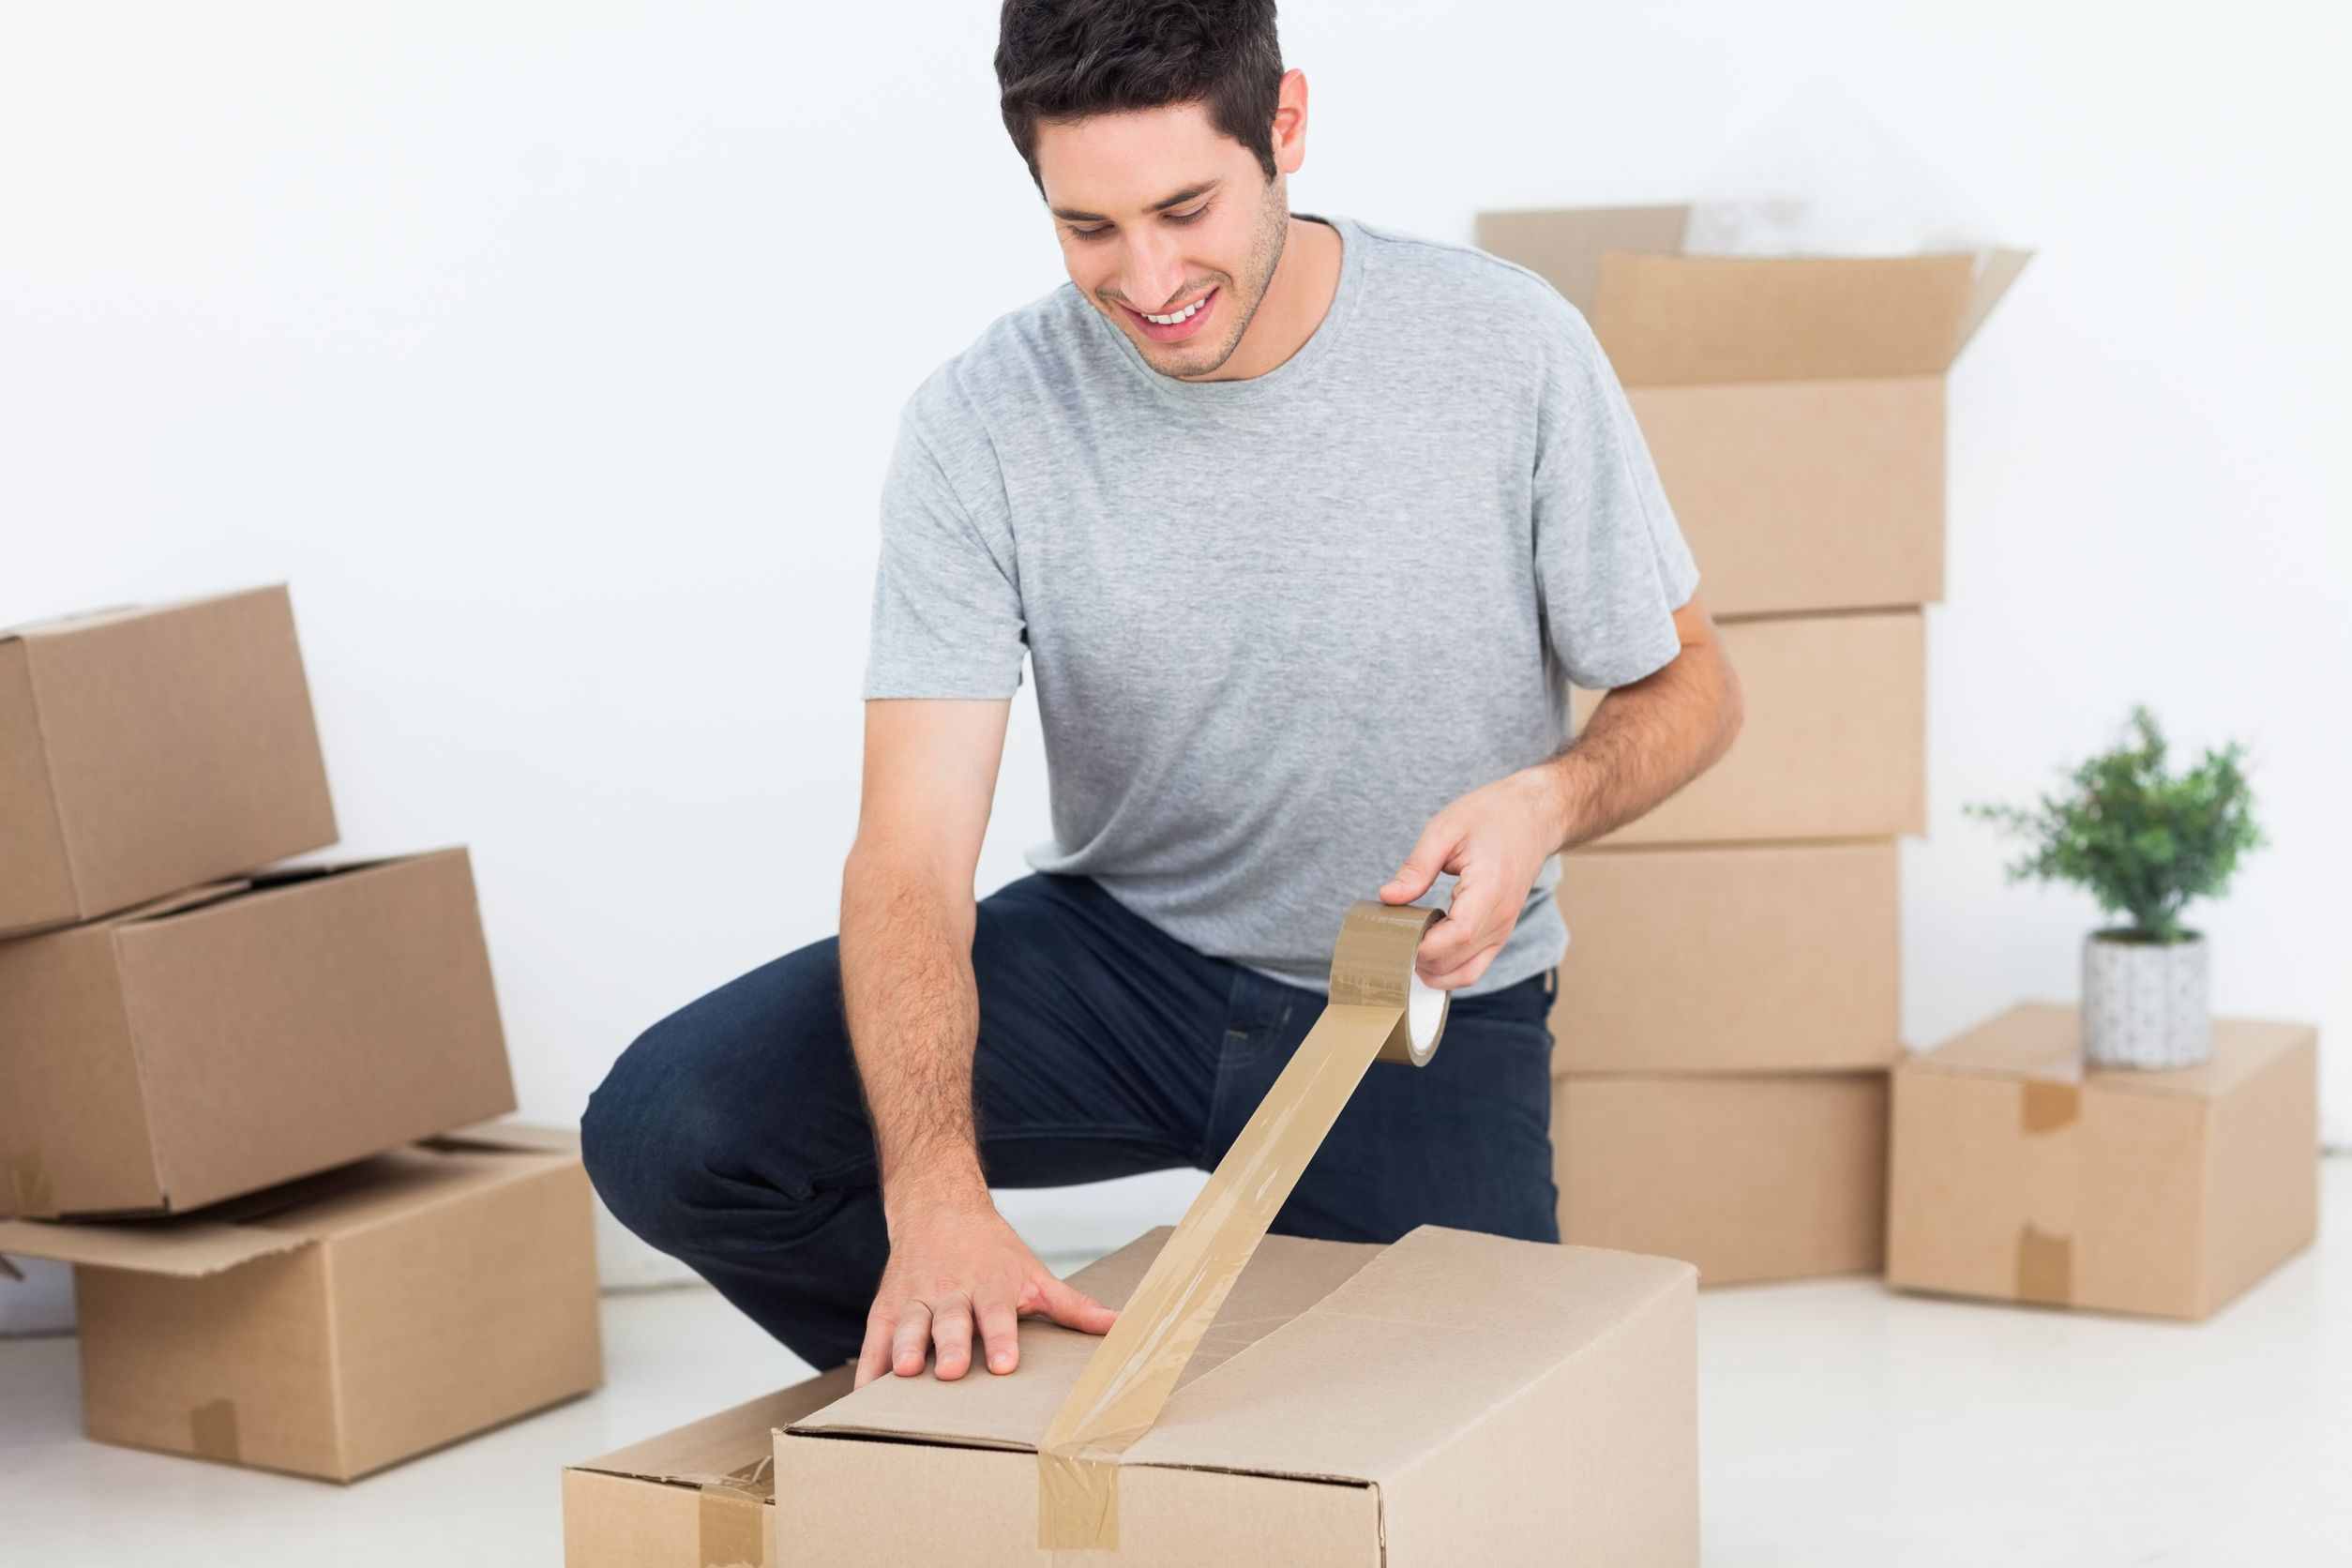 Before Hiring Packers and Movers in Chandigarh